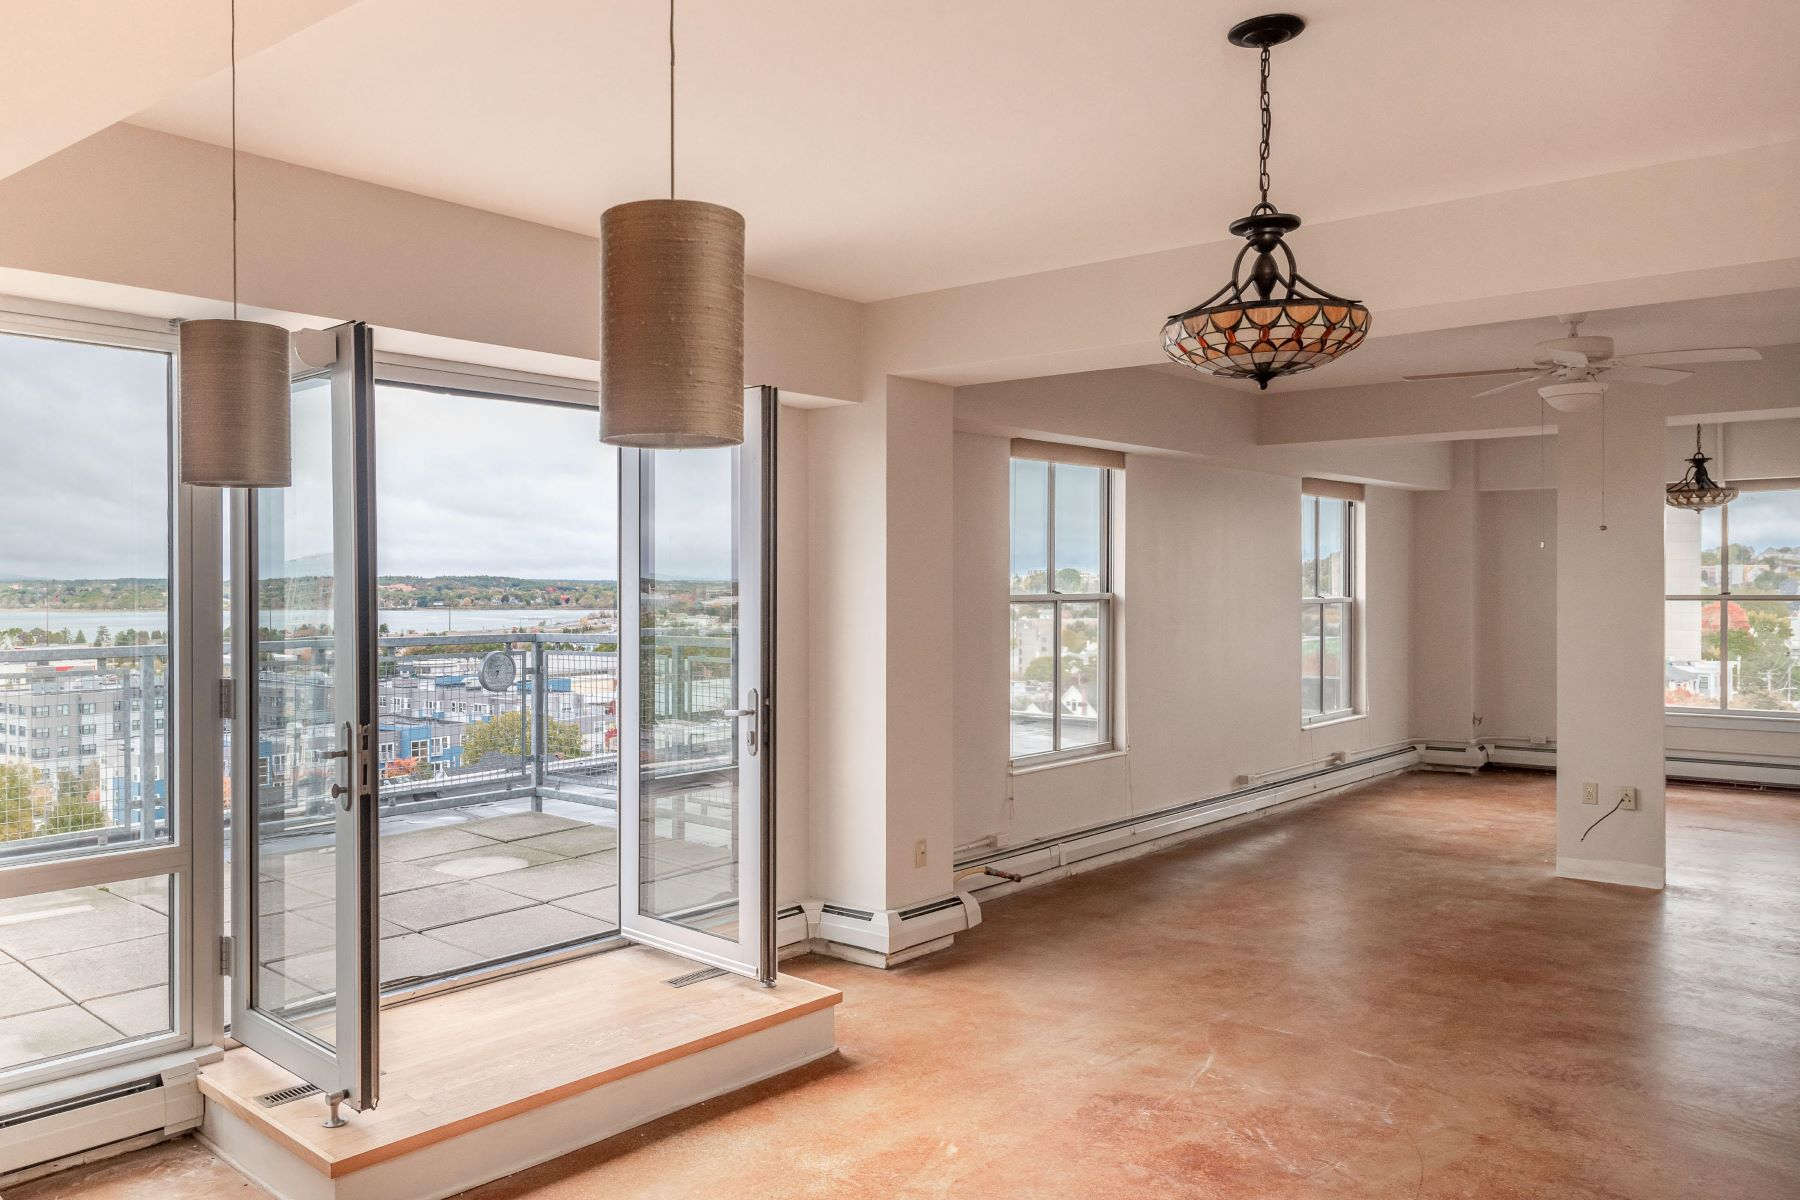 Condominiums for Sale at 21 Chestnut Street 703, Portland, Maine 04101 United States